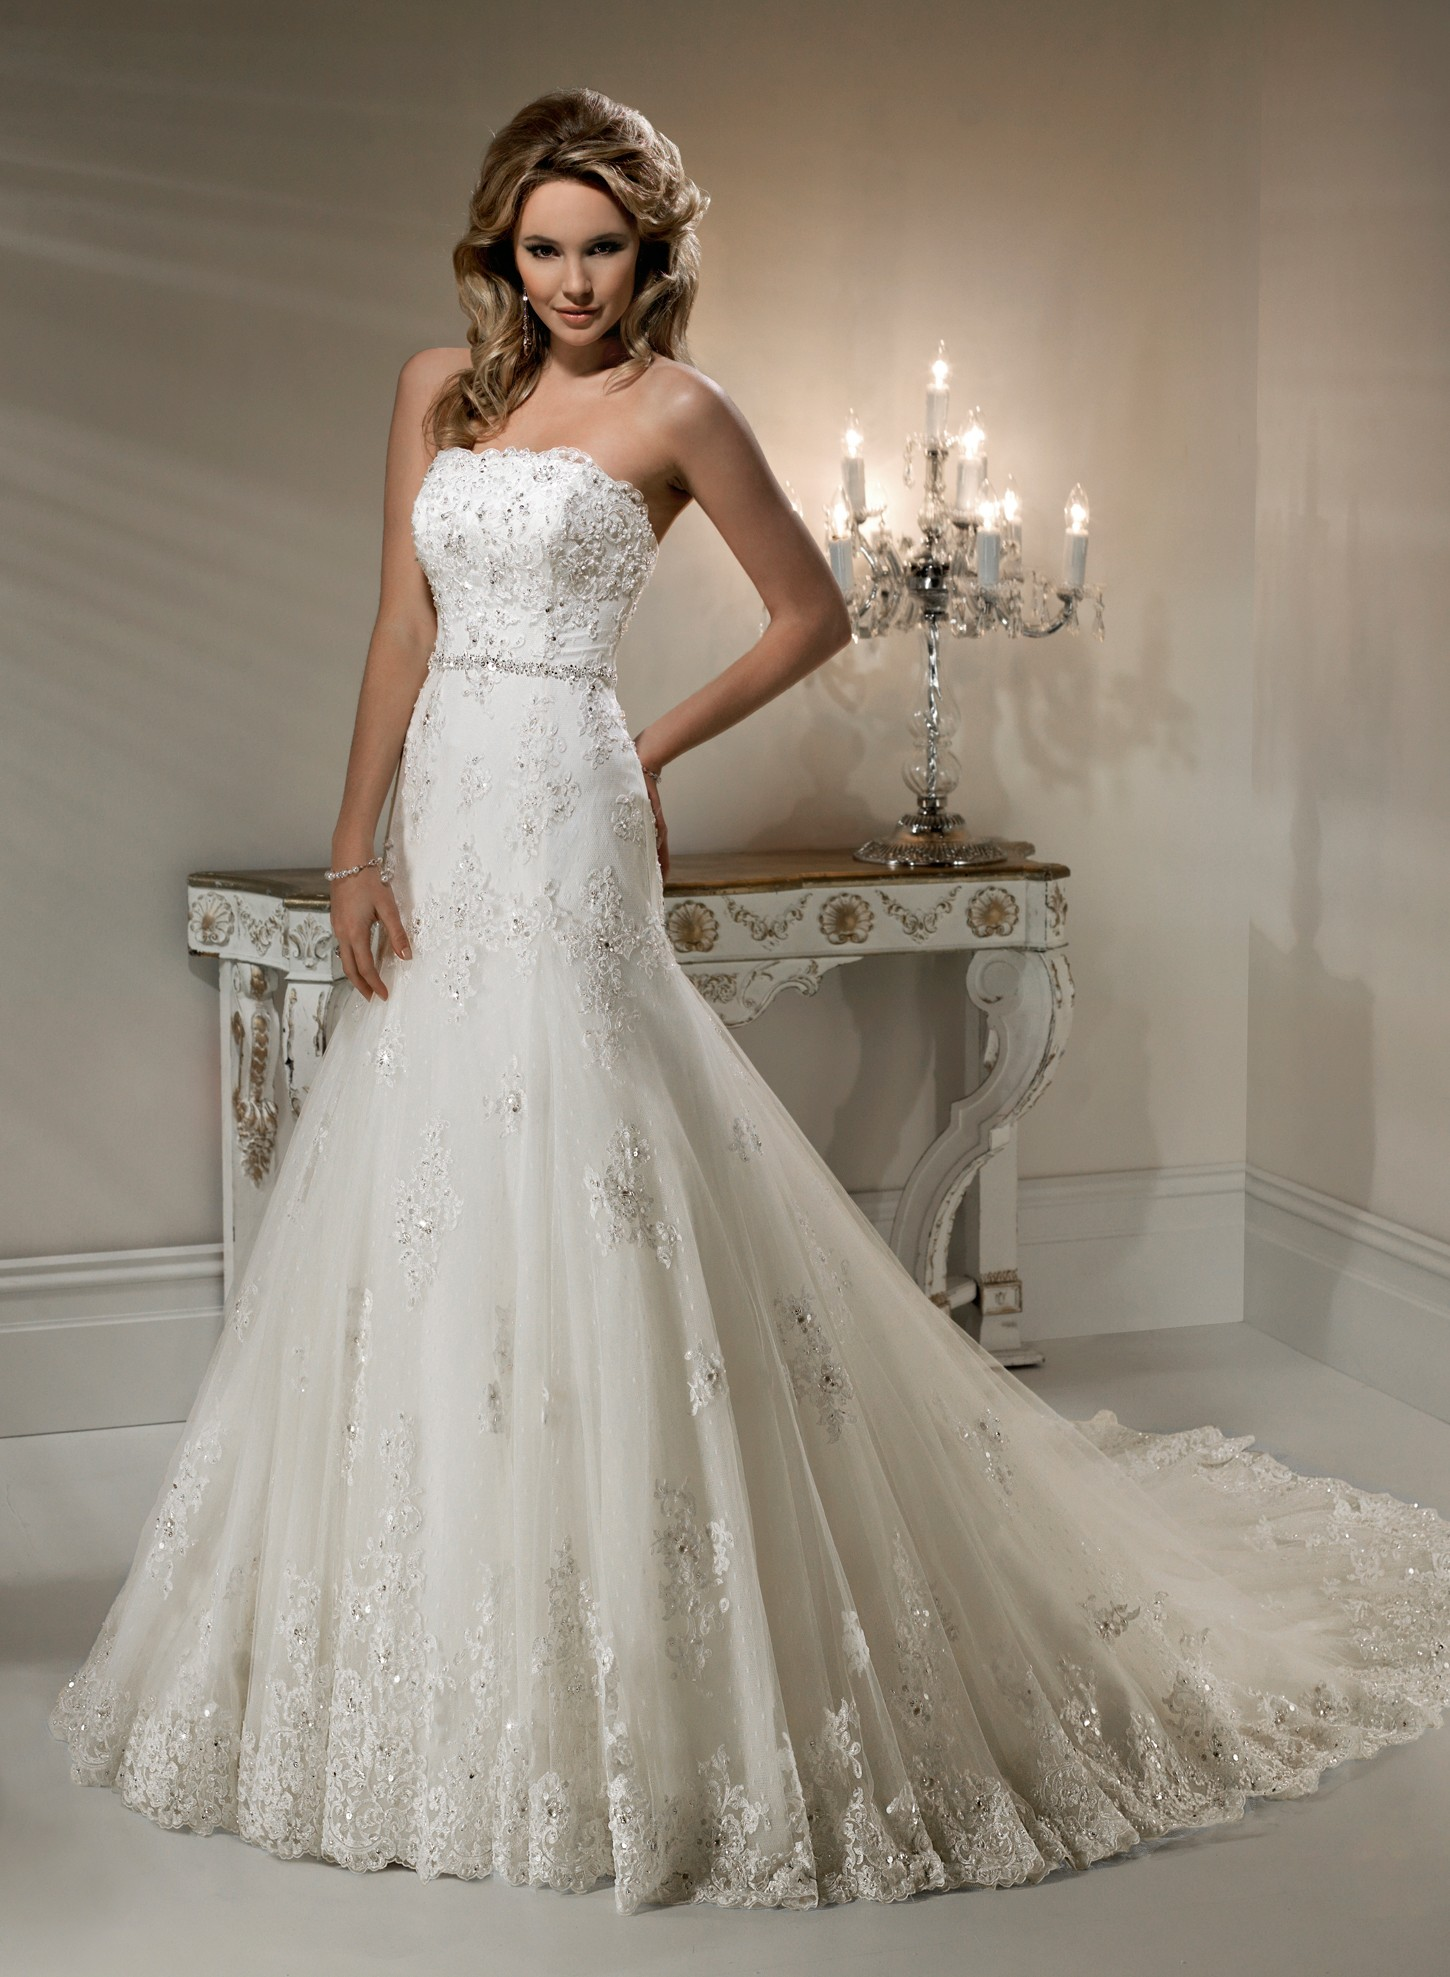 Beautiful Photos of Lace A-line Wedding Dresses for Classical Look ...